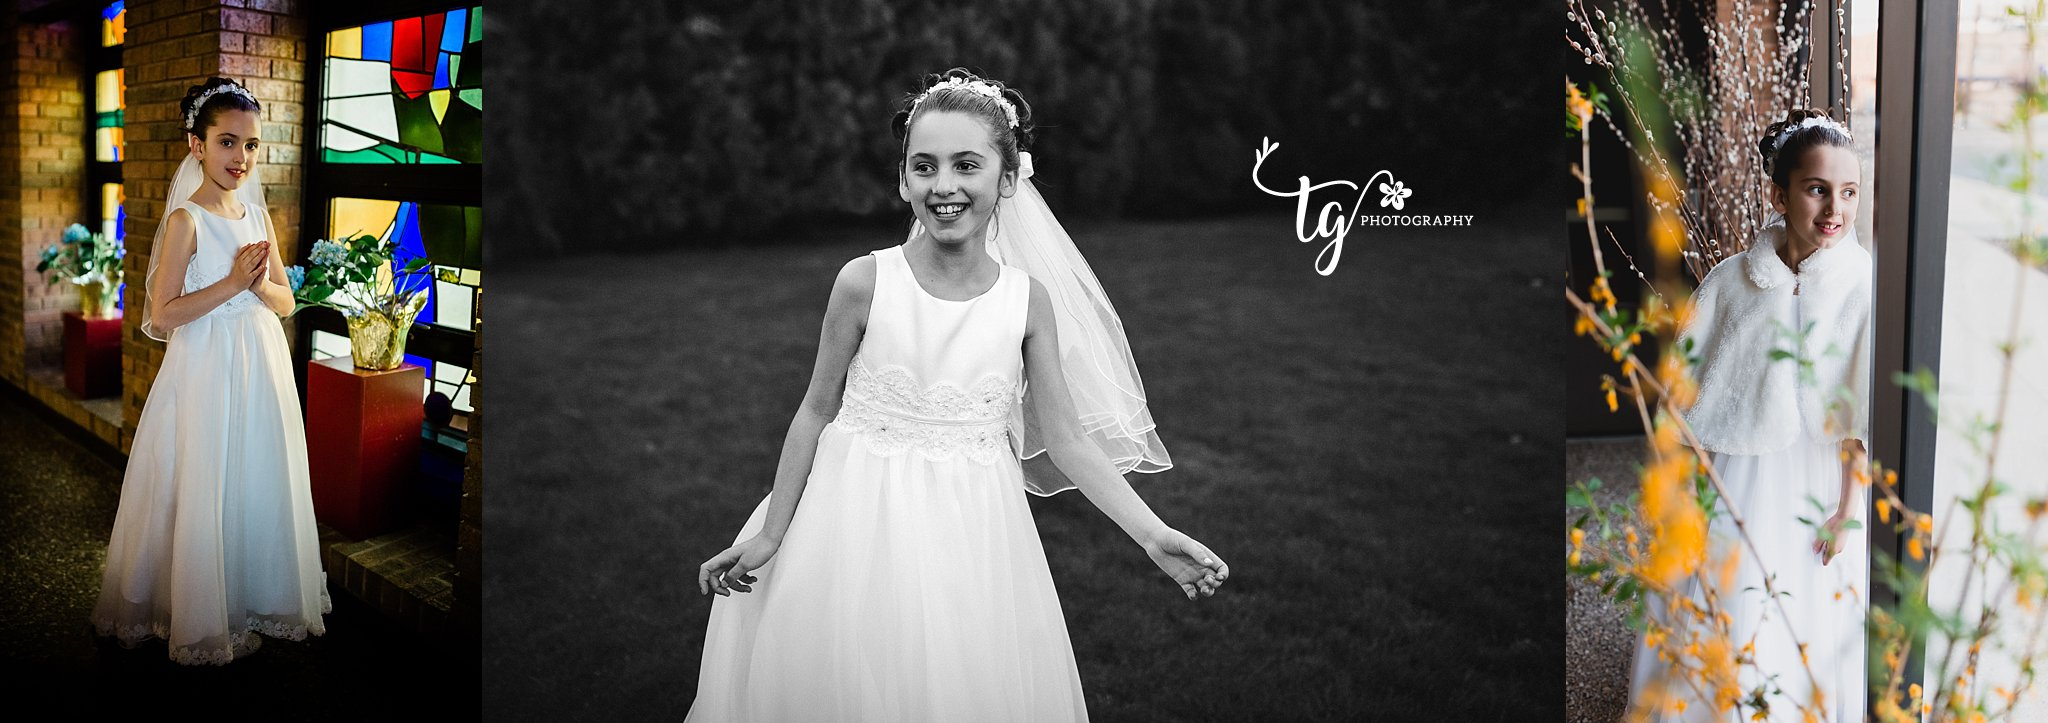 communion photographer for natural and candid images